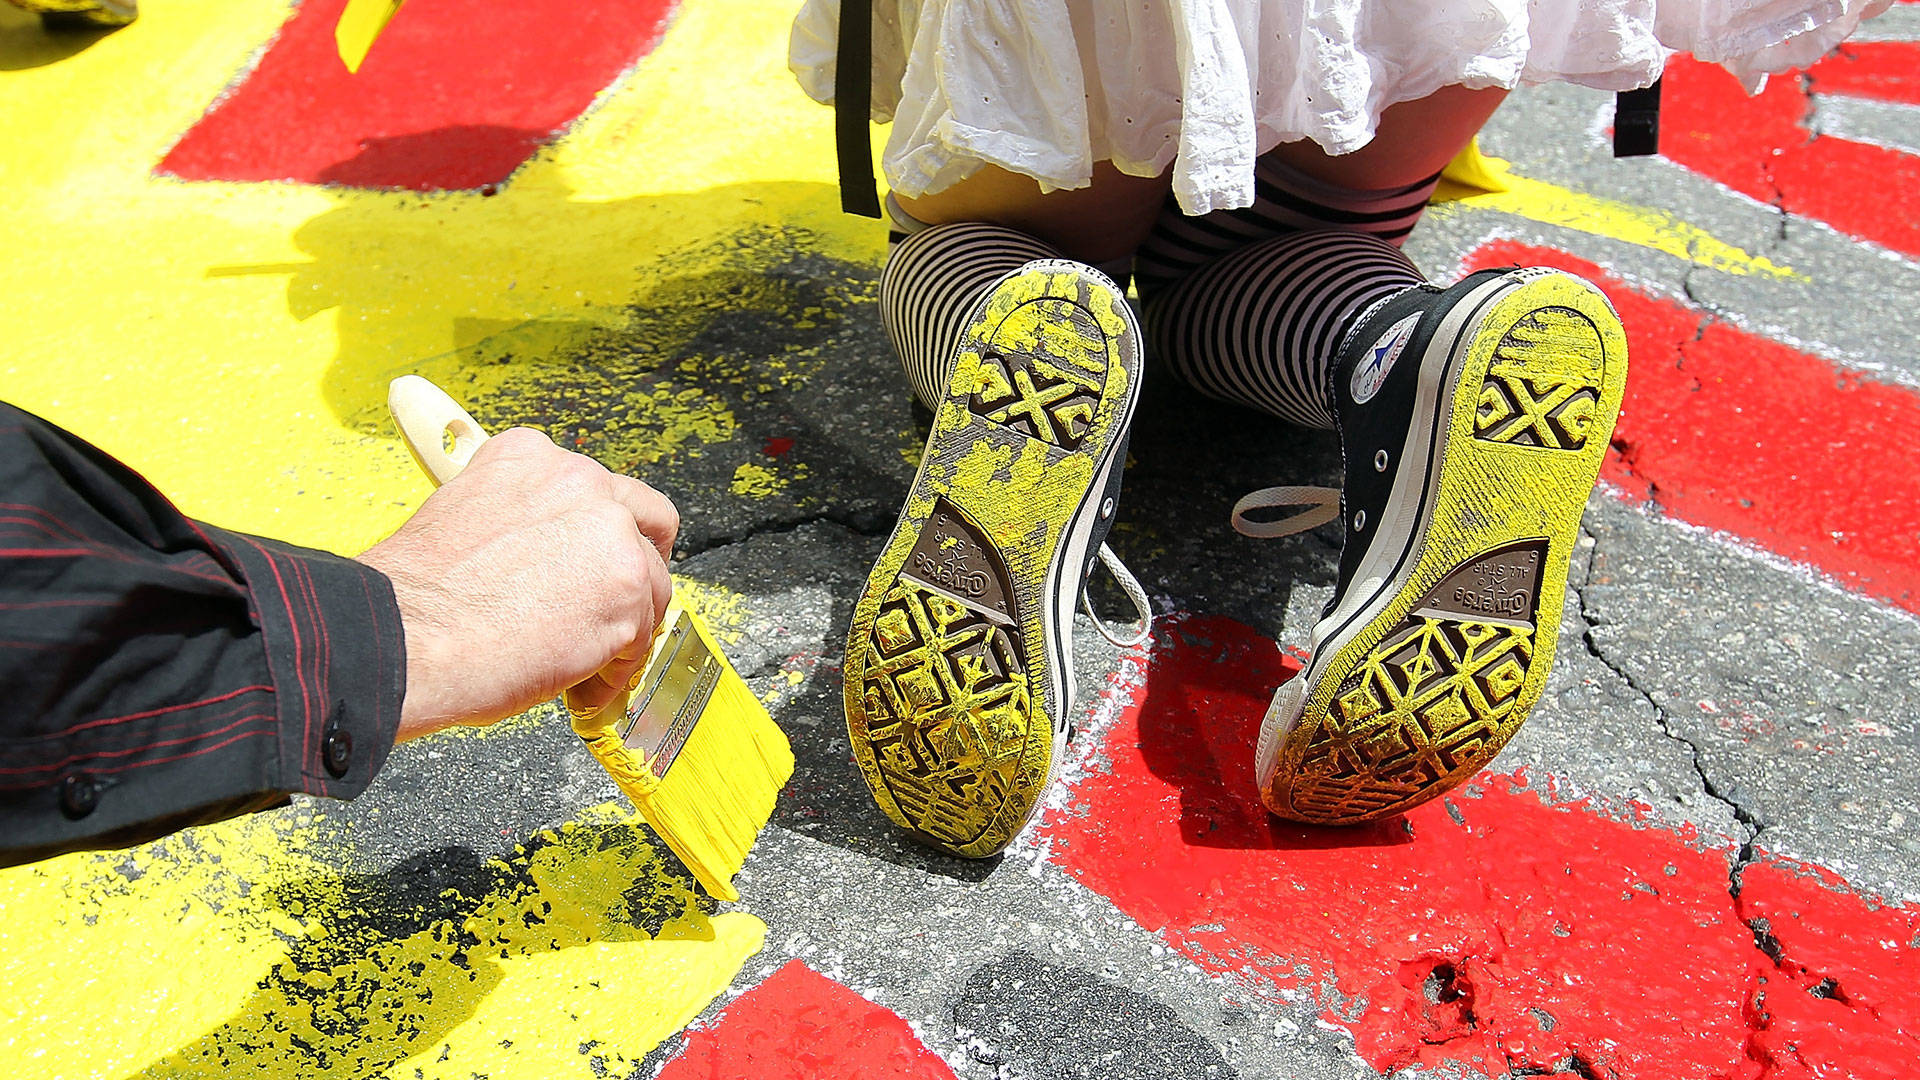 Demonstrators paint a mural on the street at the intersection of Market and Montgomery Streets in San Francisco in 2012. Justin Sullivan/Getty Images